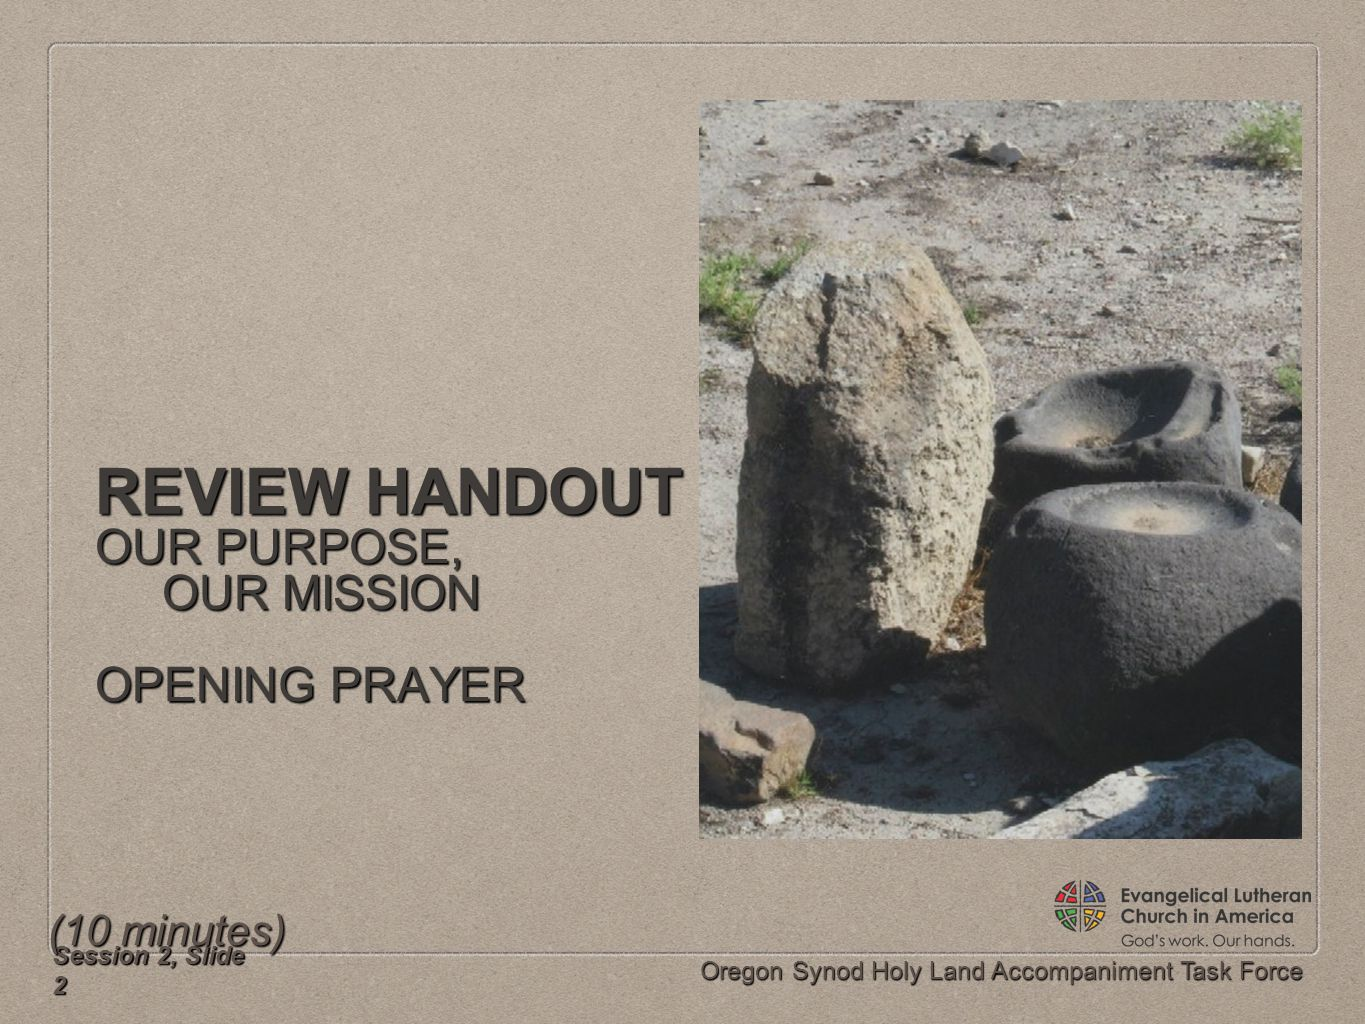 Oregon Synod Holy Land Accompaniment Task Force REVIEW HANDOUT OUR PURPOSE, OUR MISSION OUR MISSION OPENING PRAYER Session 2, Slide 2 (10 minutes)